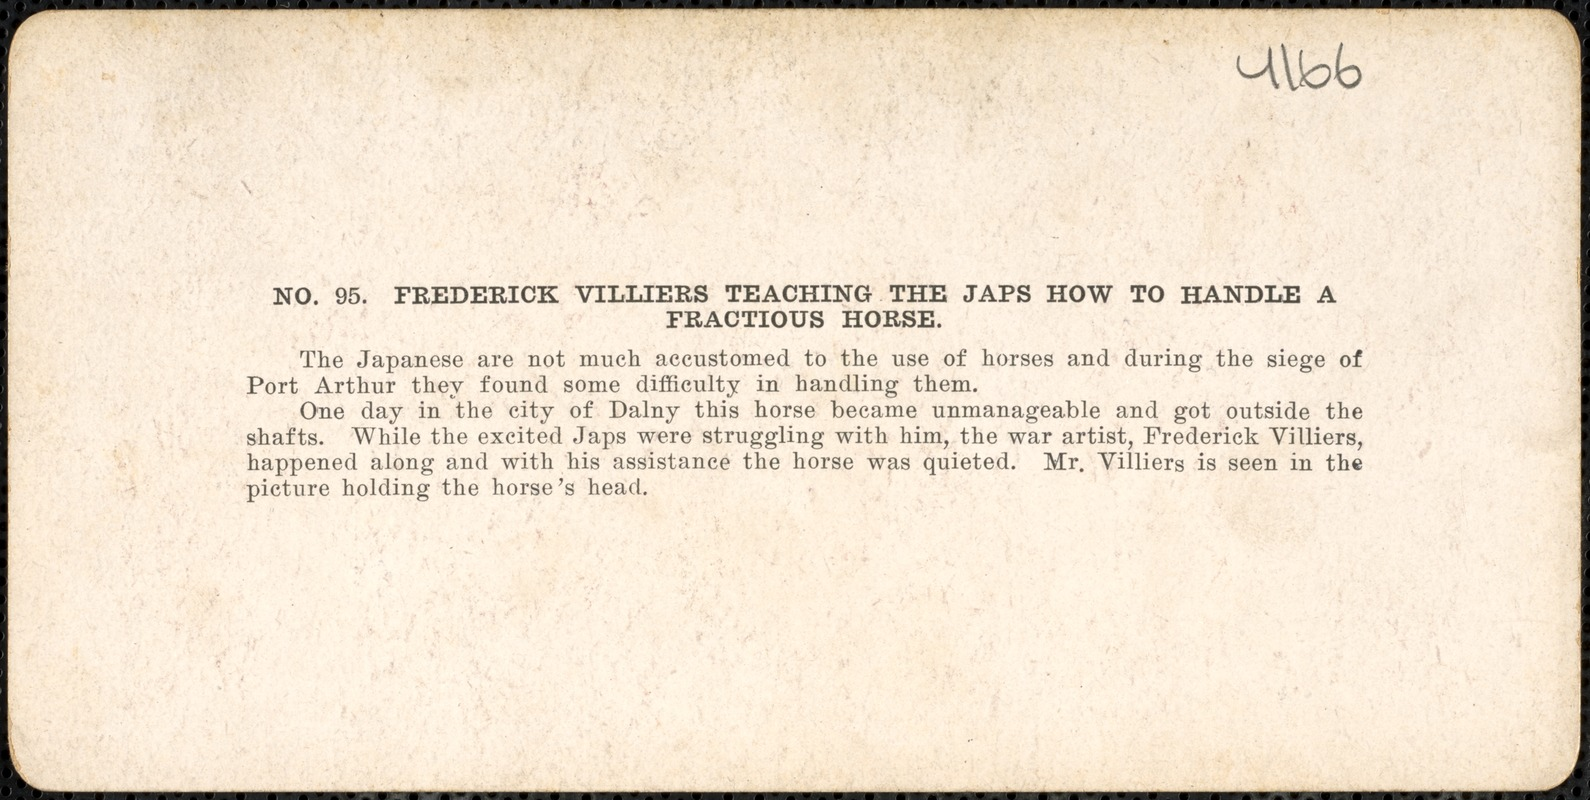 Frederick Villiers teaching the Japs how to handle a fractious horse